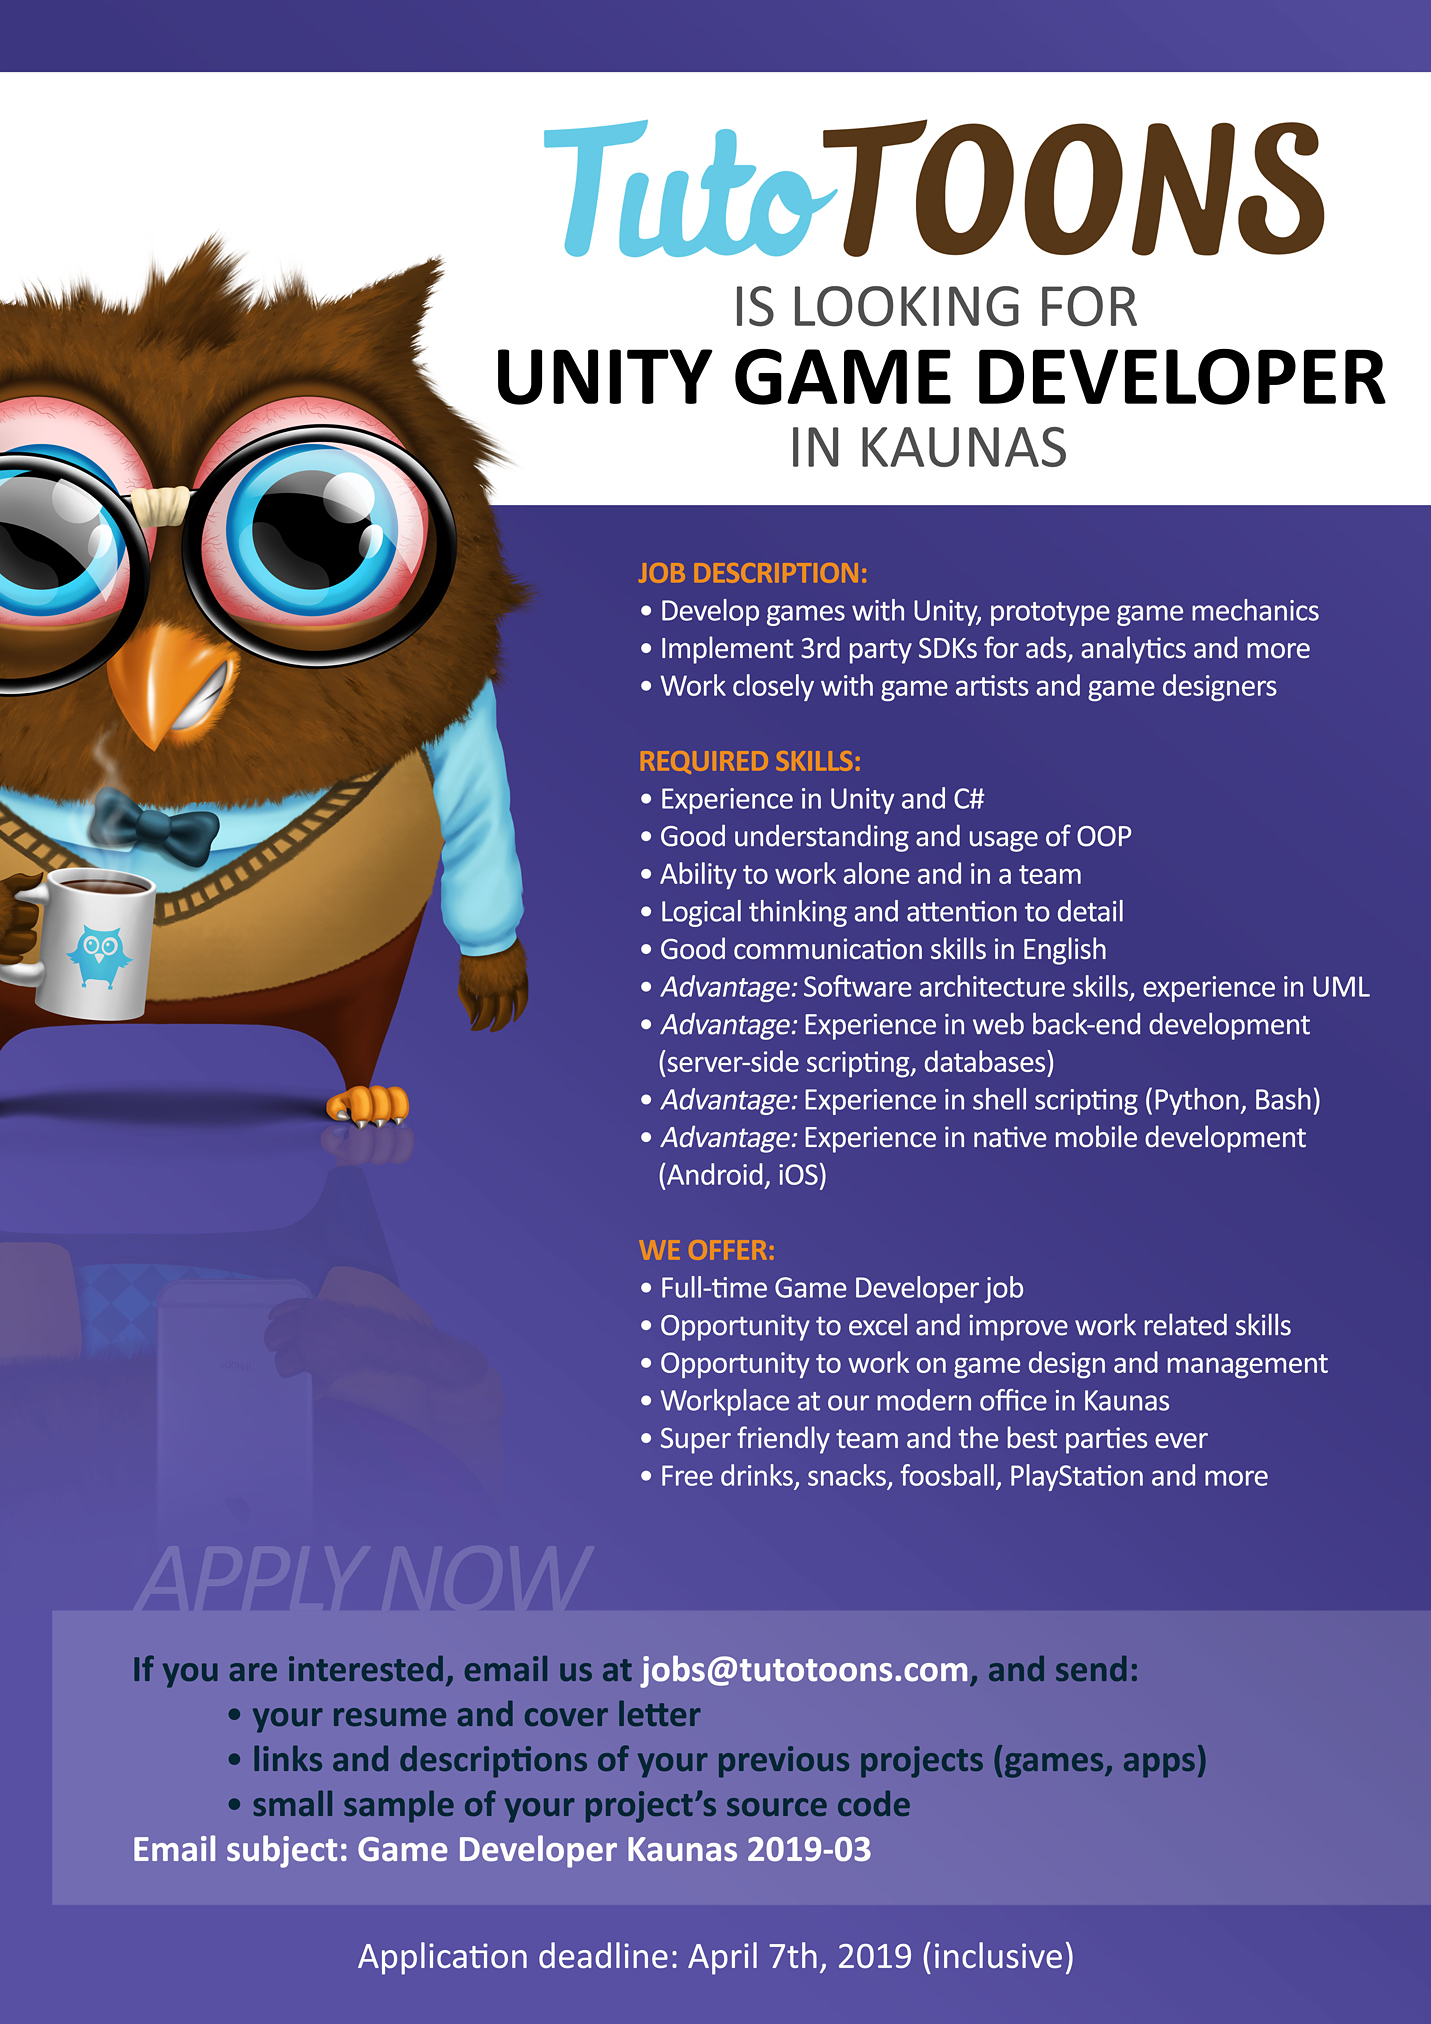 CLOSED] TutoTOONS Is Looking for a Unity Game Developer in Kaunas